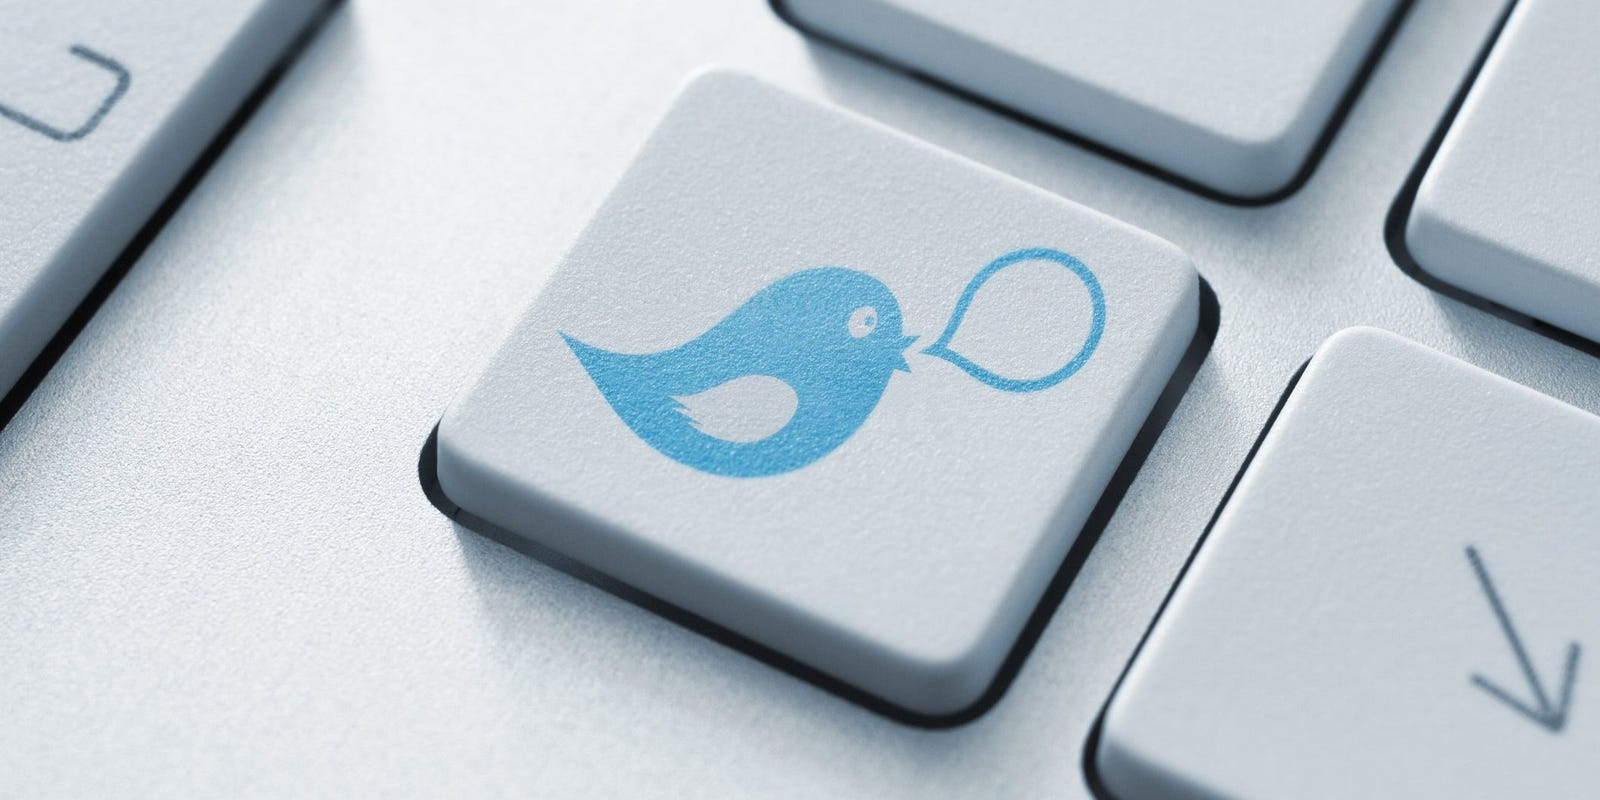 Twitter gets lots of ink, but its audience size is dwarfed by Facebook